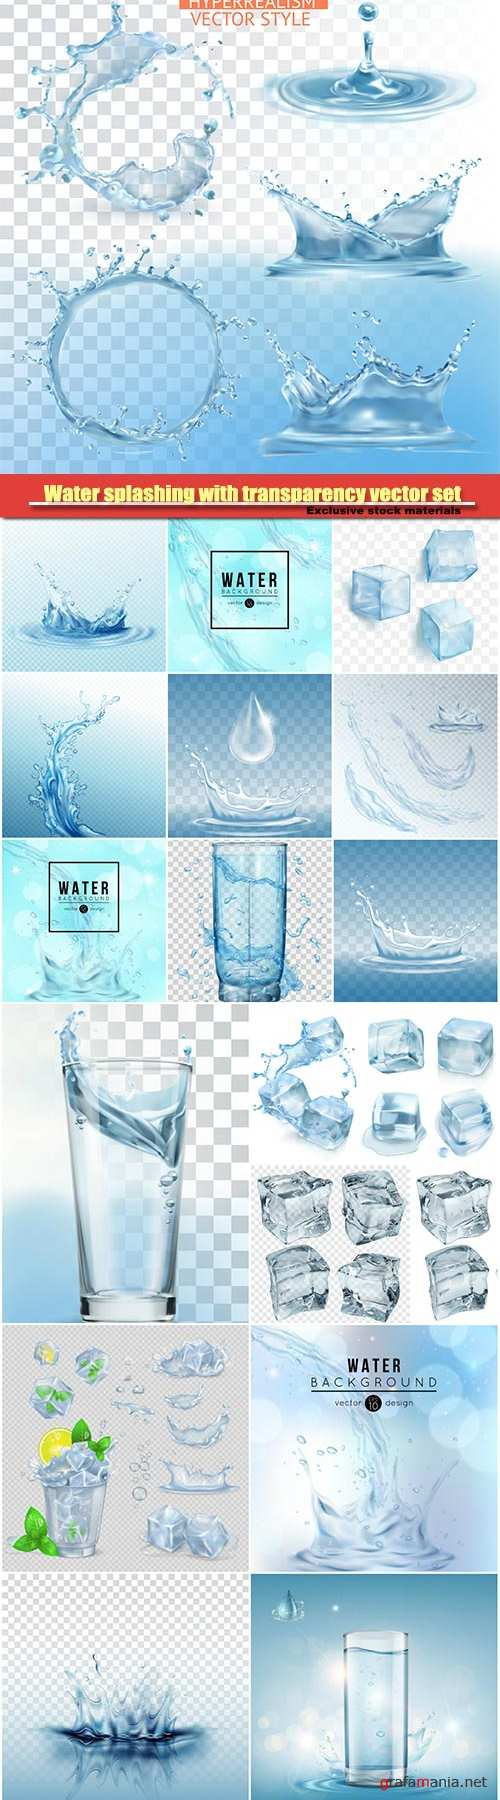 Water splashing with transparency vector set, glass with water, green mint leaves and ice cubes